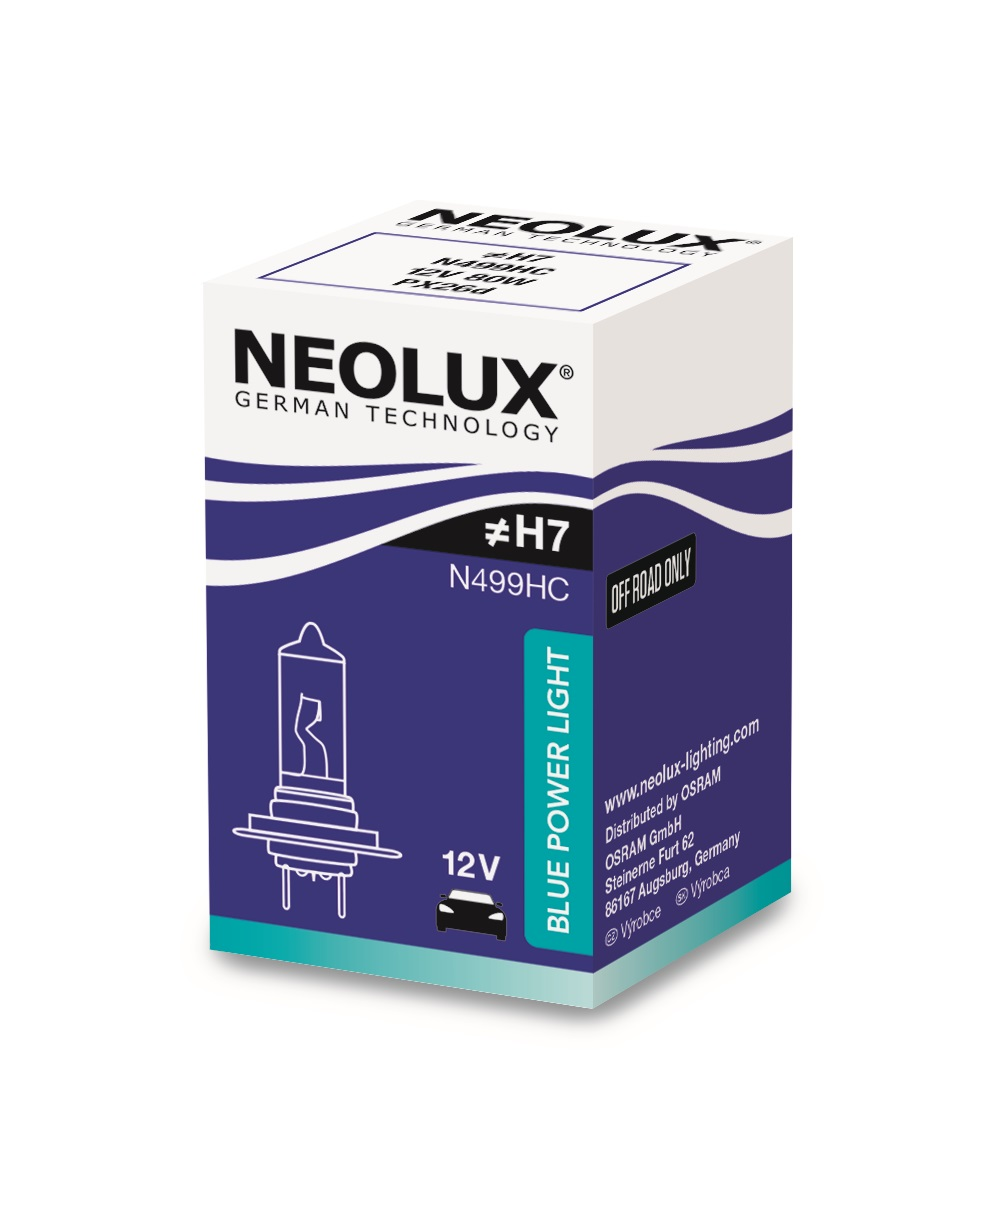 Osram halogenová žárovka, NEOLUX BLUE POWER LIGHT, H7, PX26d, 12V, 80W, N499HC